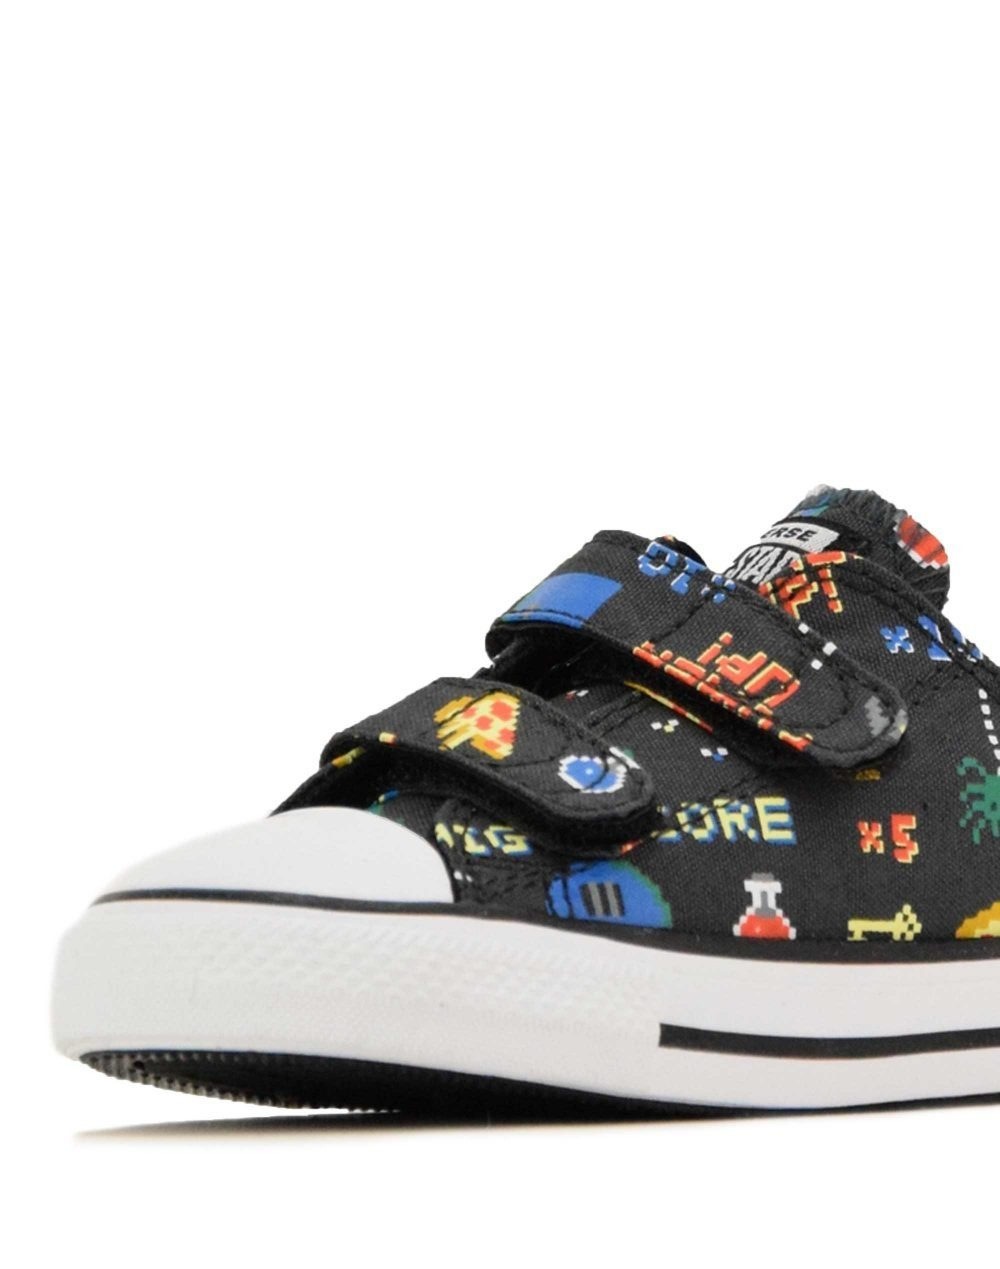 Converse Chuck Taylor All Star 2V Gamer (770213C) Storm Wind/Black/White